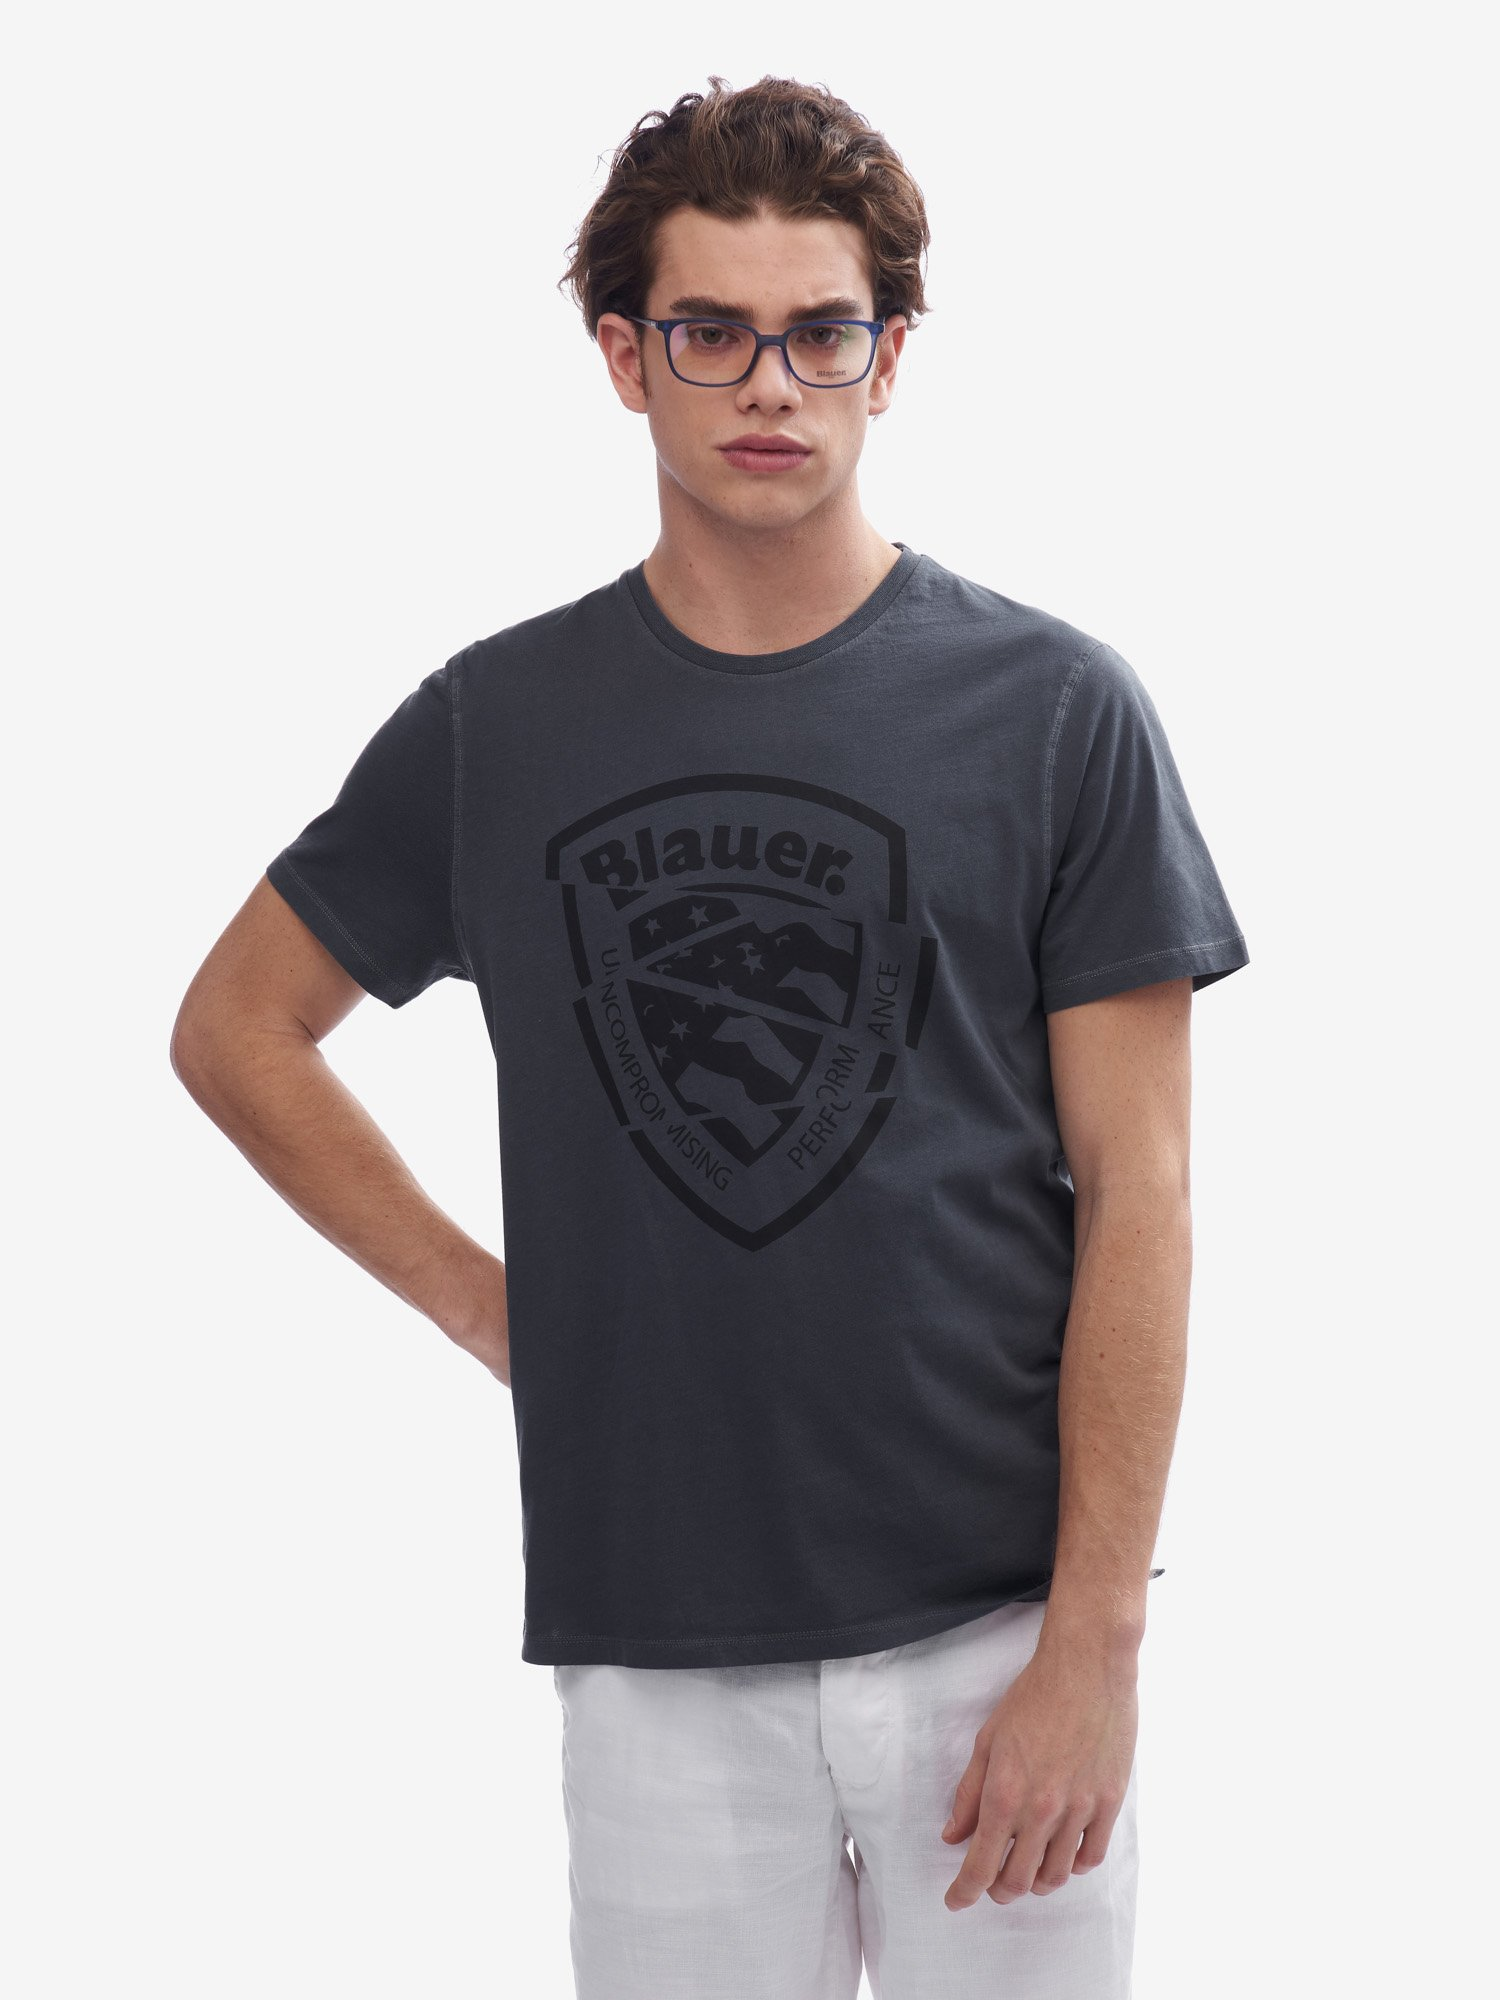 SHORT SLEEVE T-SHIRT - Blauer